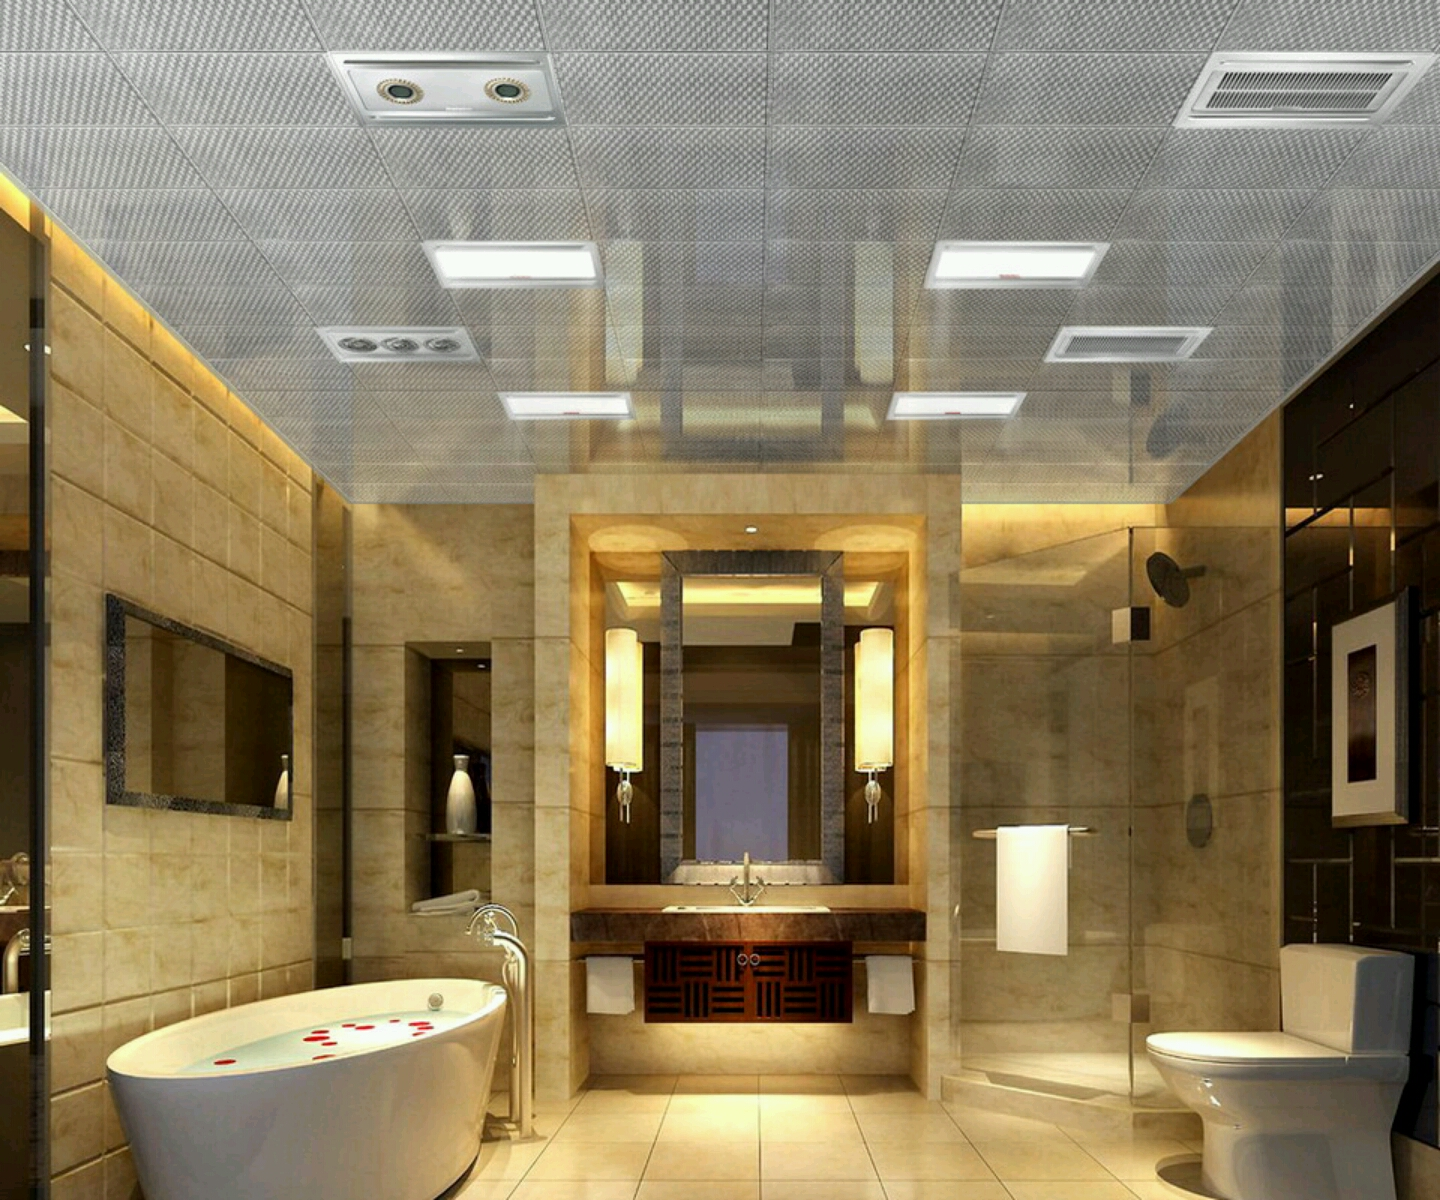 New home designs latest.: Luxury Bathrooms designs ideas.